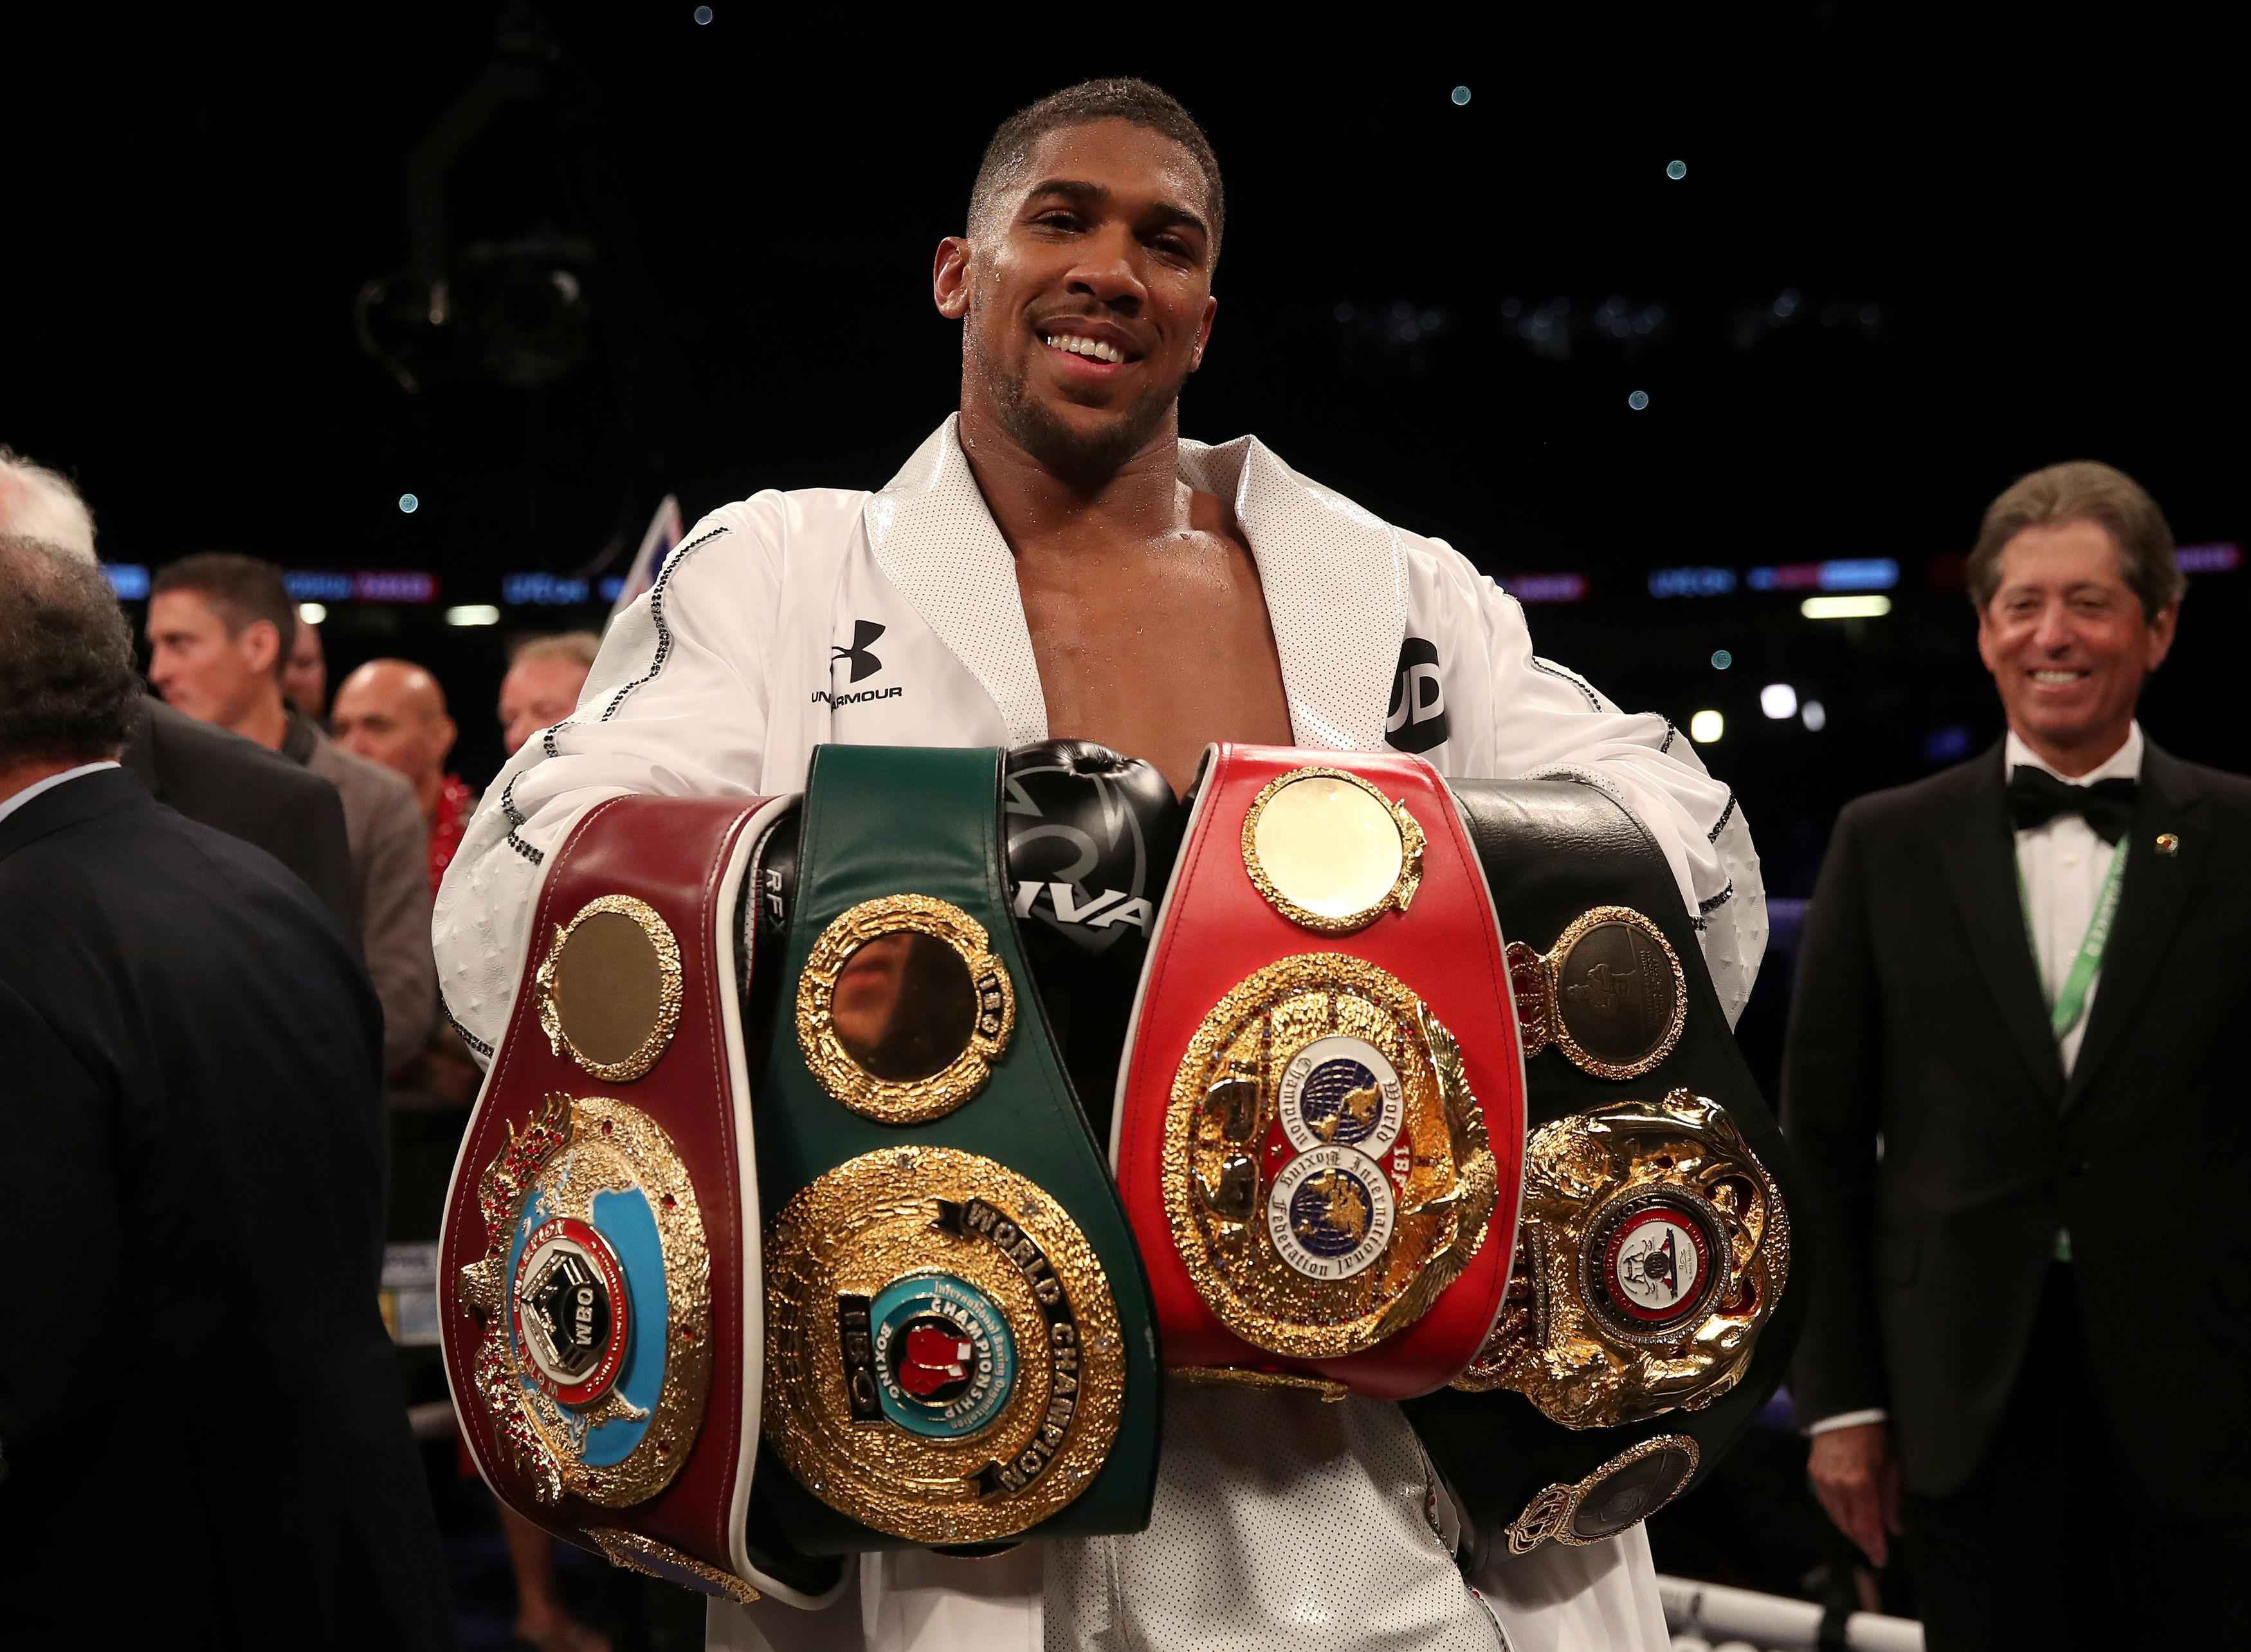 Joshua will defend his titles against Povetkin on September 22